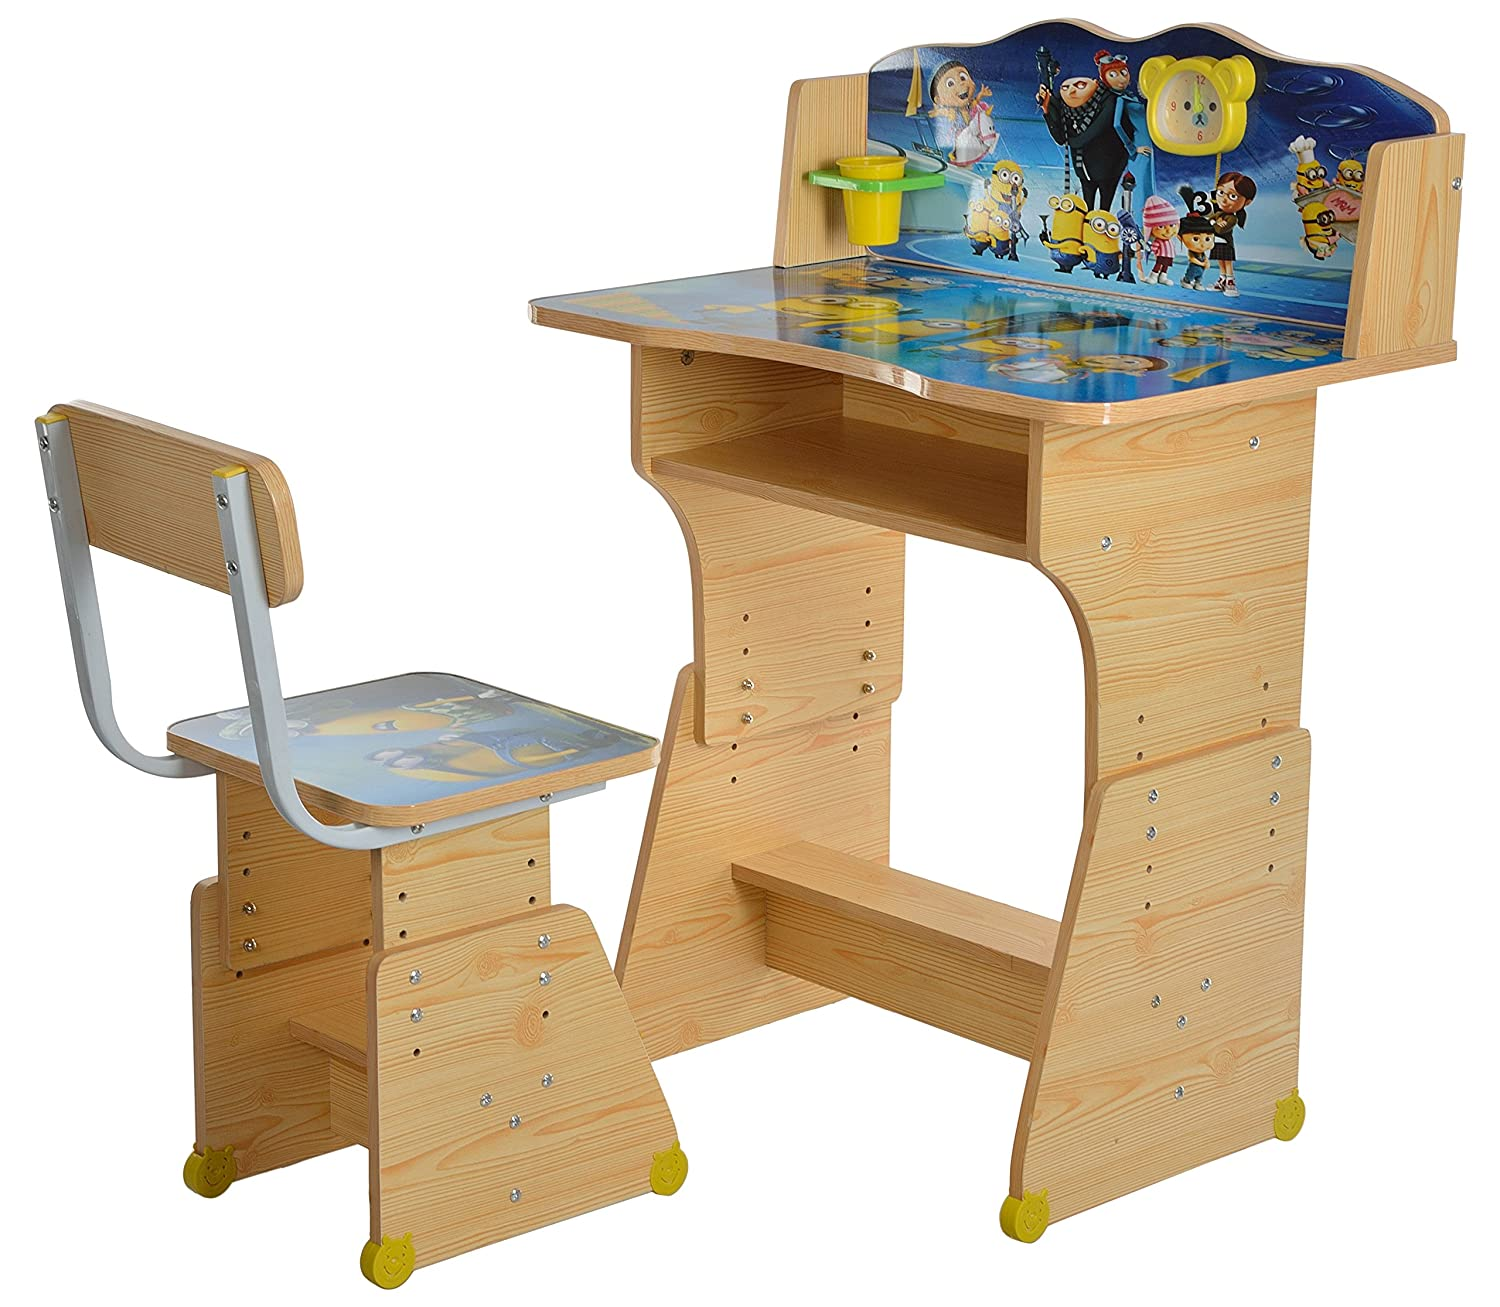 Iris Heavy Duty Kids Table and Chair Study Set (Wooden): Amazon.in